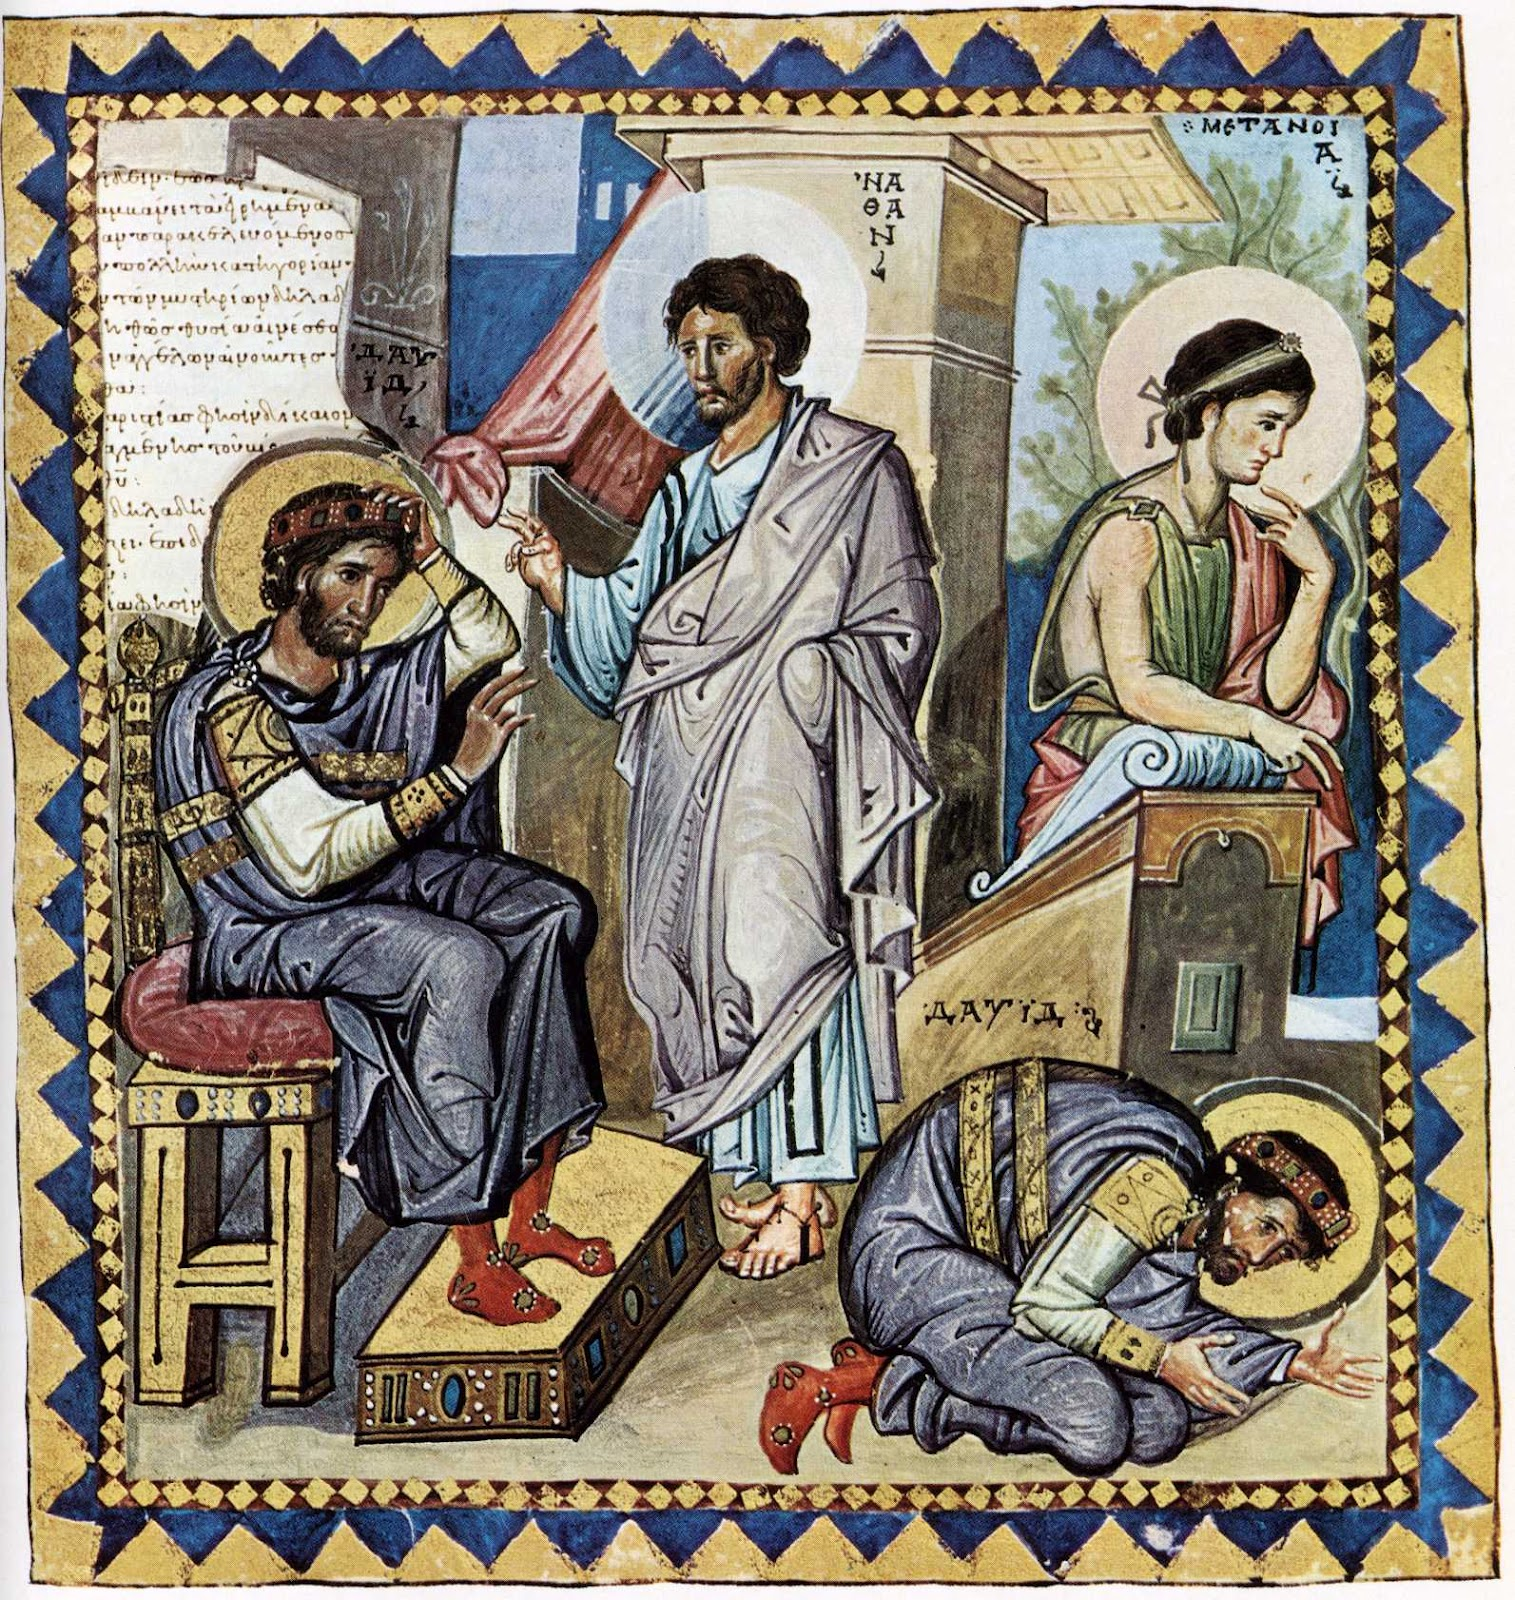 Art history symbolism and legends dark ages not everywhere penitence of david paris psalter x cblioteque nationale paris biocorpaavc Image collections